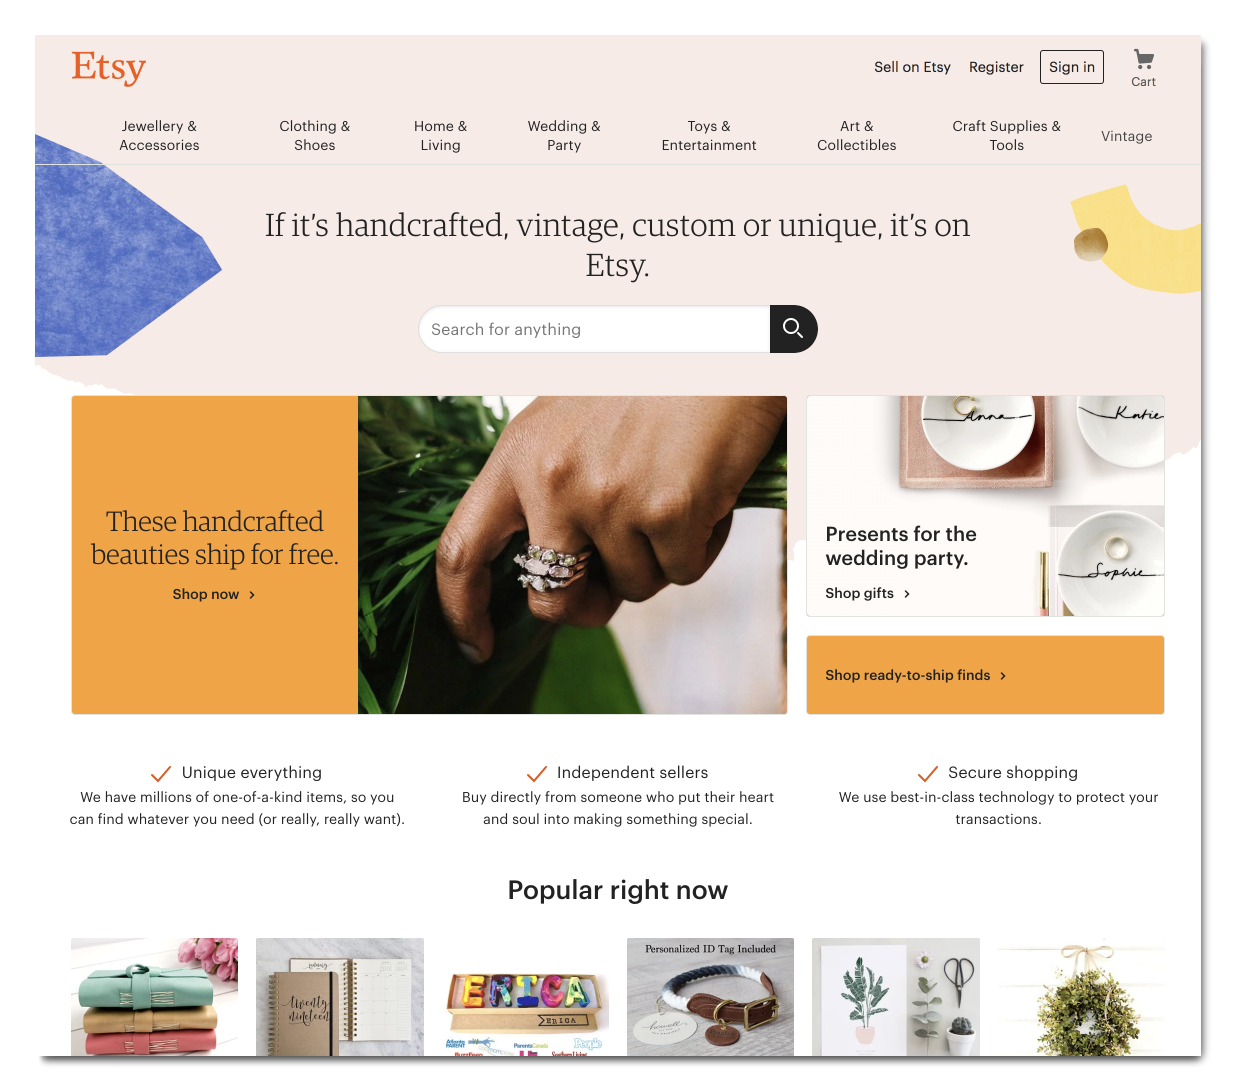 multichannel selling on Etsy